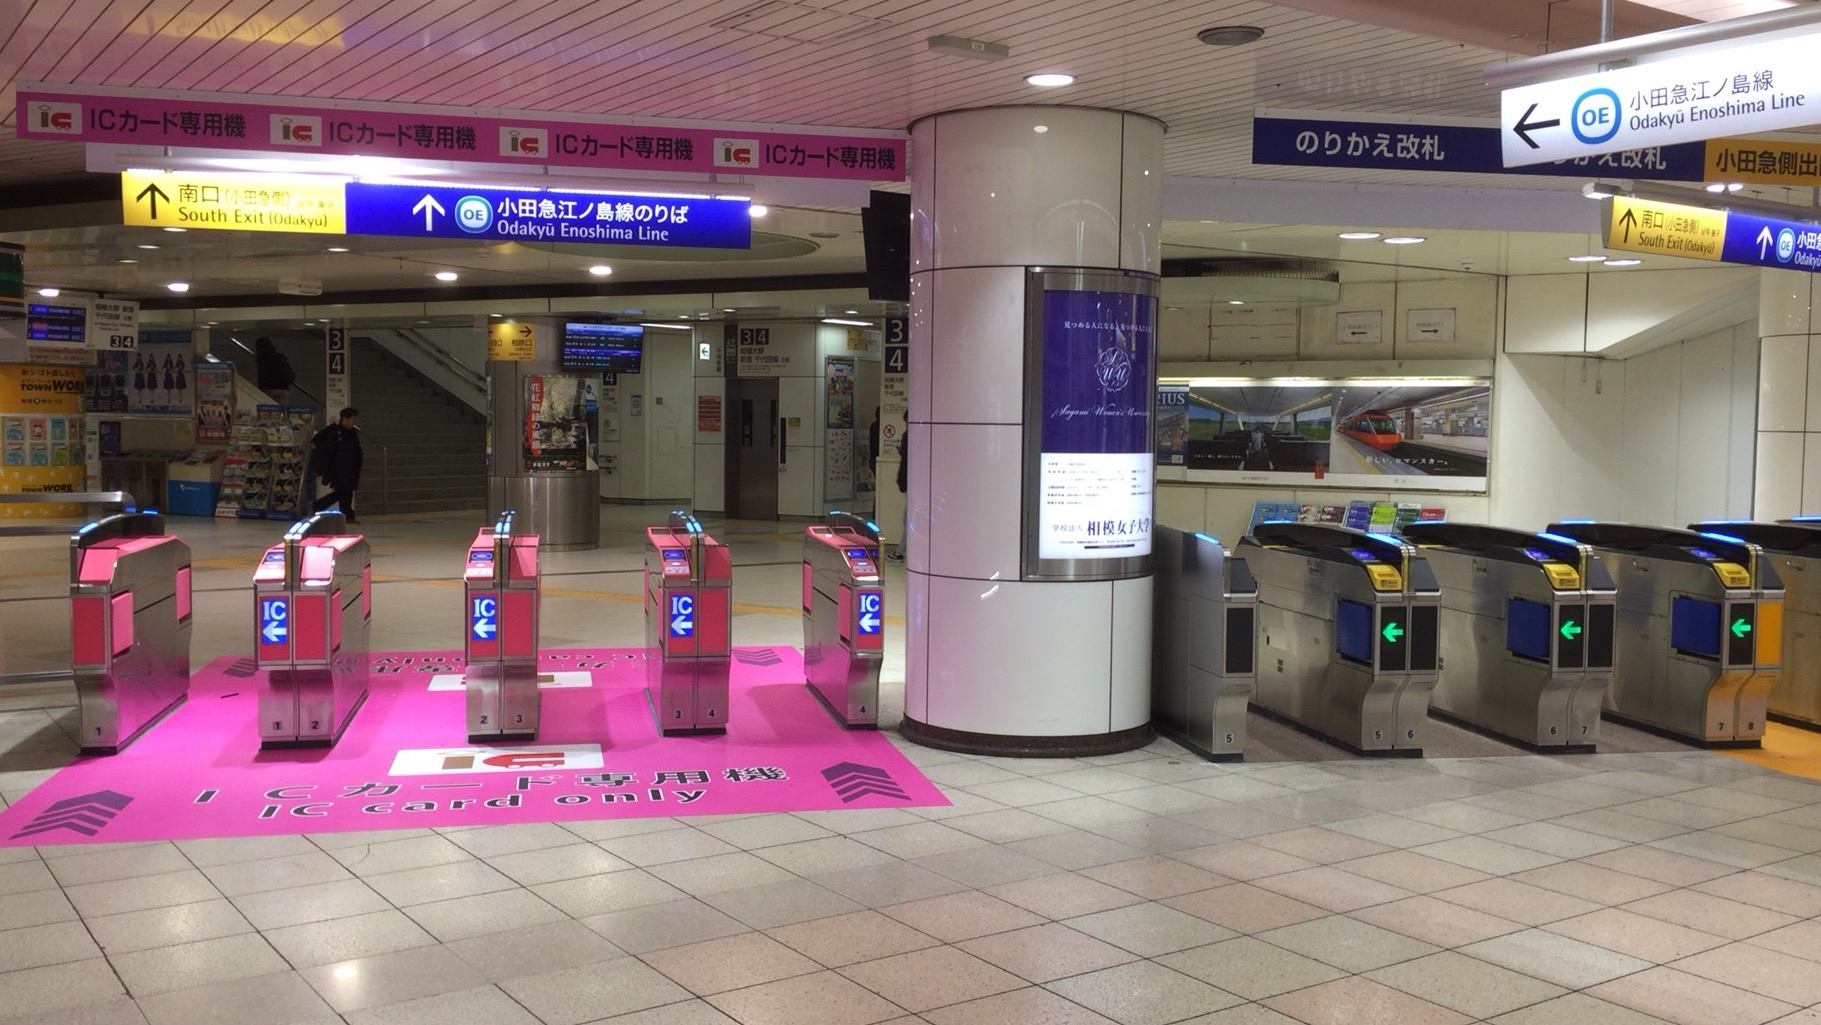 ファイル transfer ticket gate of yamato station began operation in